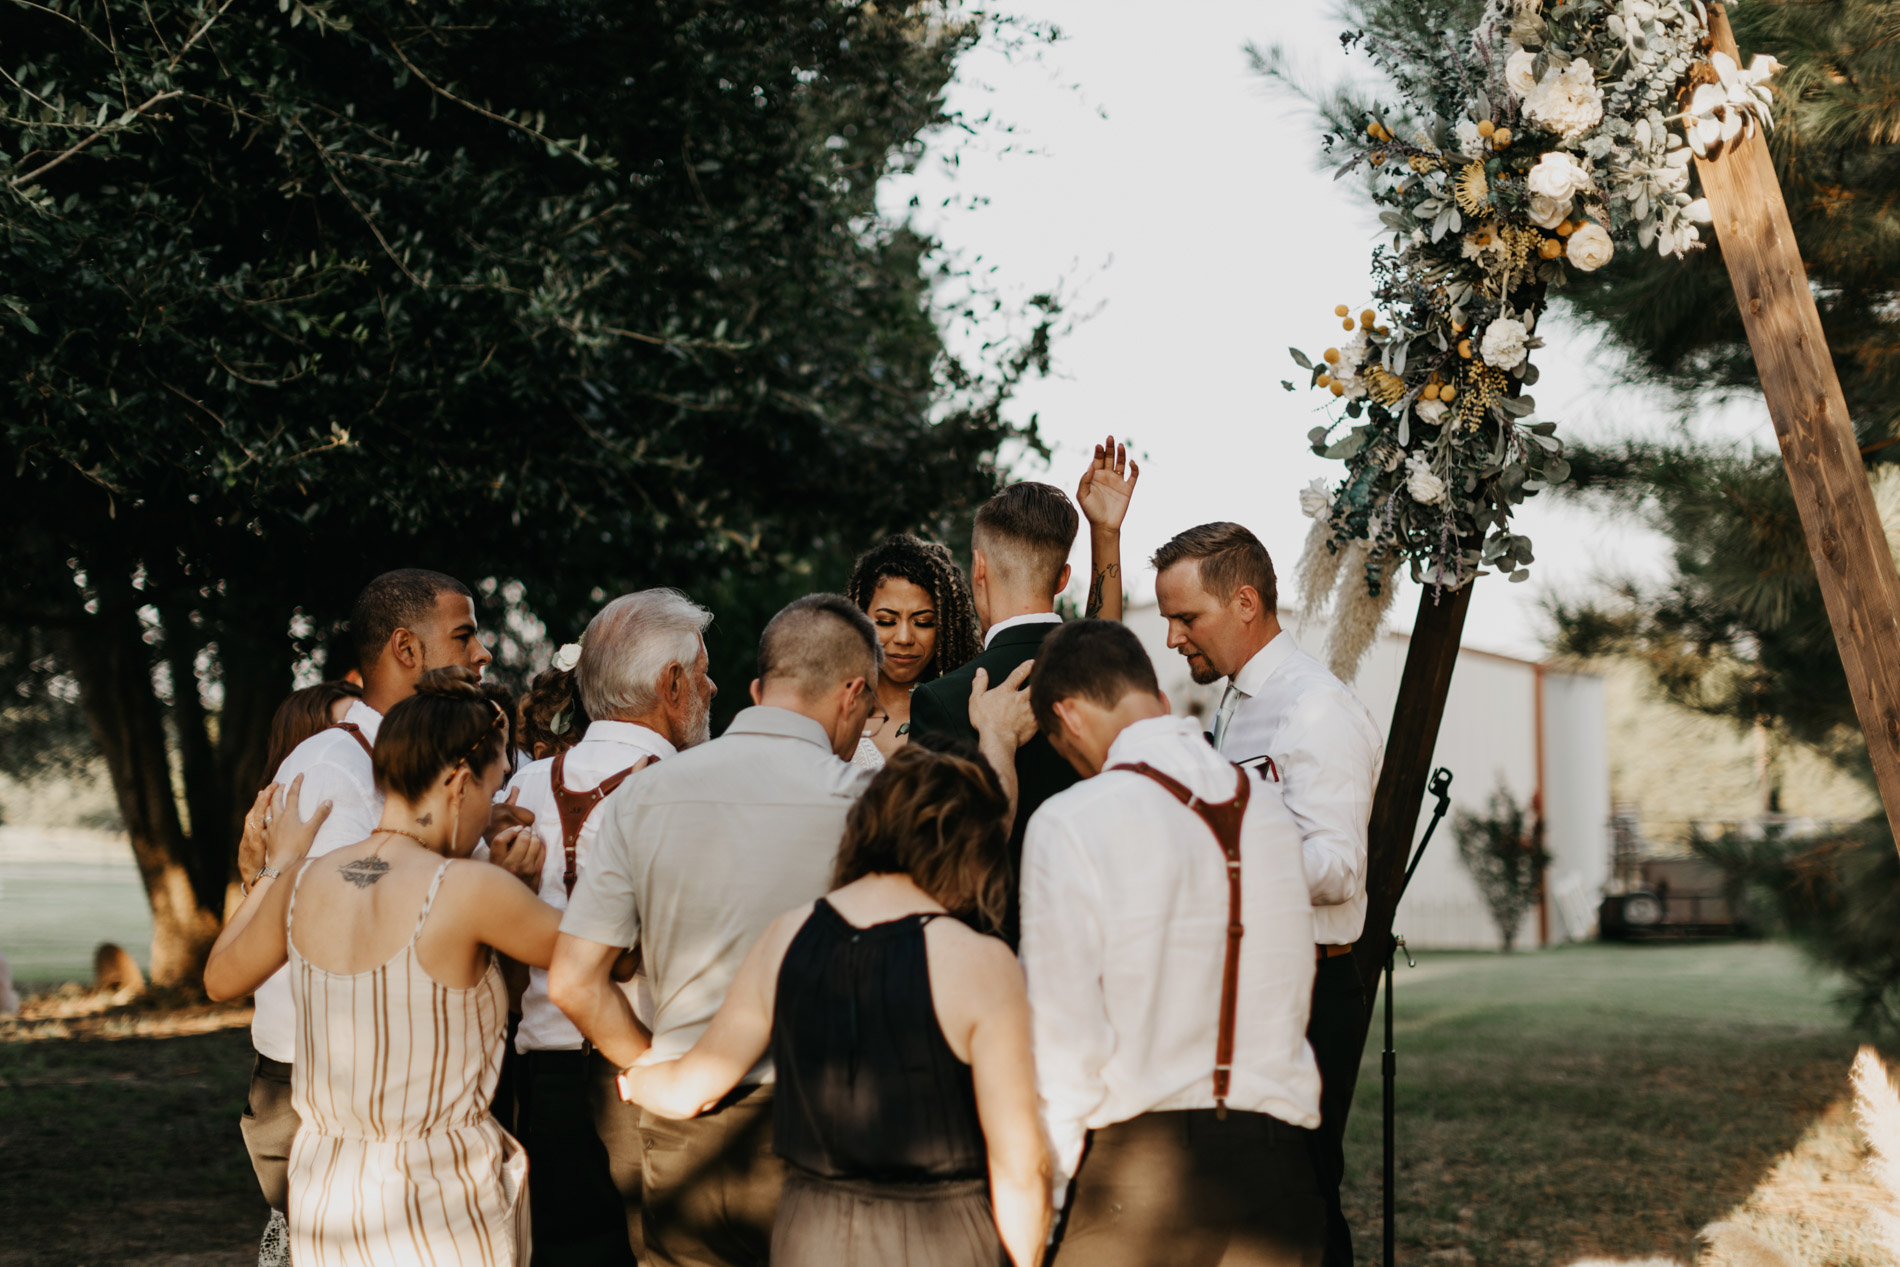 Family worshiping with bride and groom during wedding ceremony